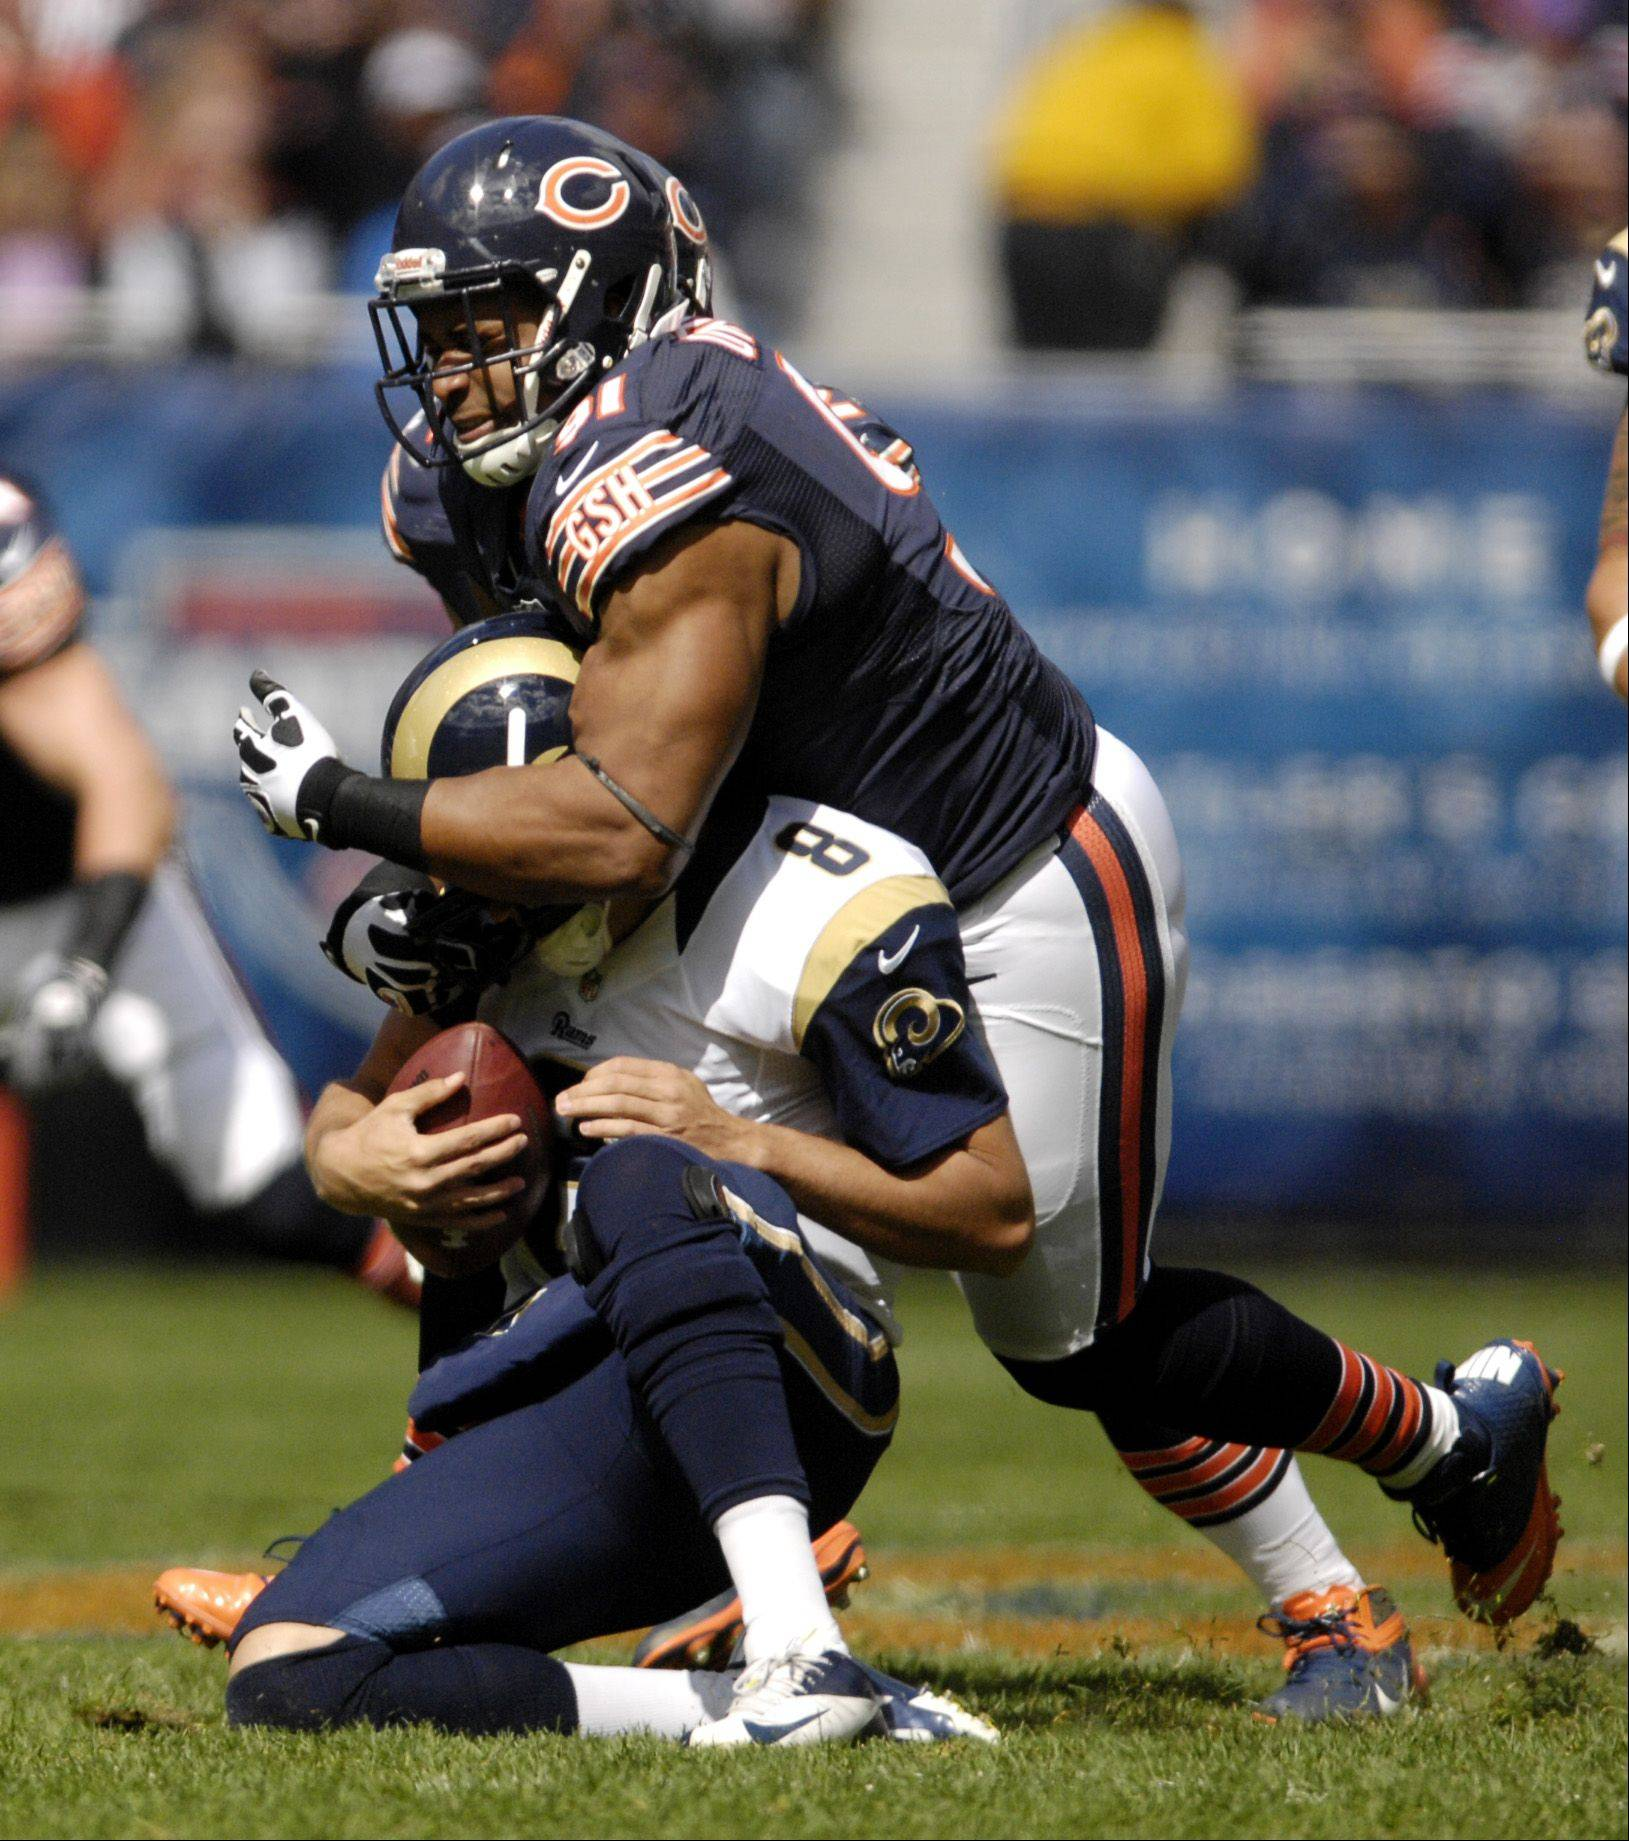 Chicago Bears defensive tackle Amobi Okoye sacks St. Louis Rams quarterback Sam Bradford during the first quarter at Soldier Field in Chicago.